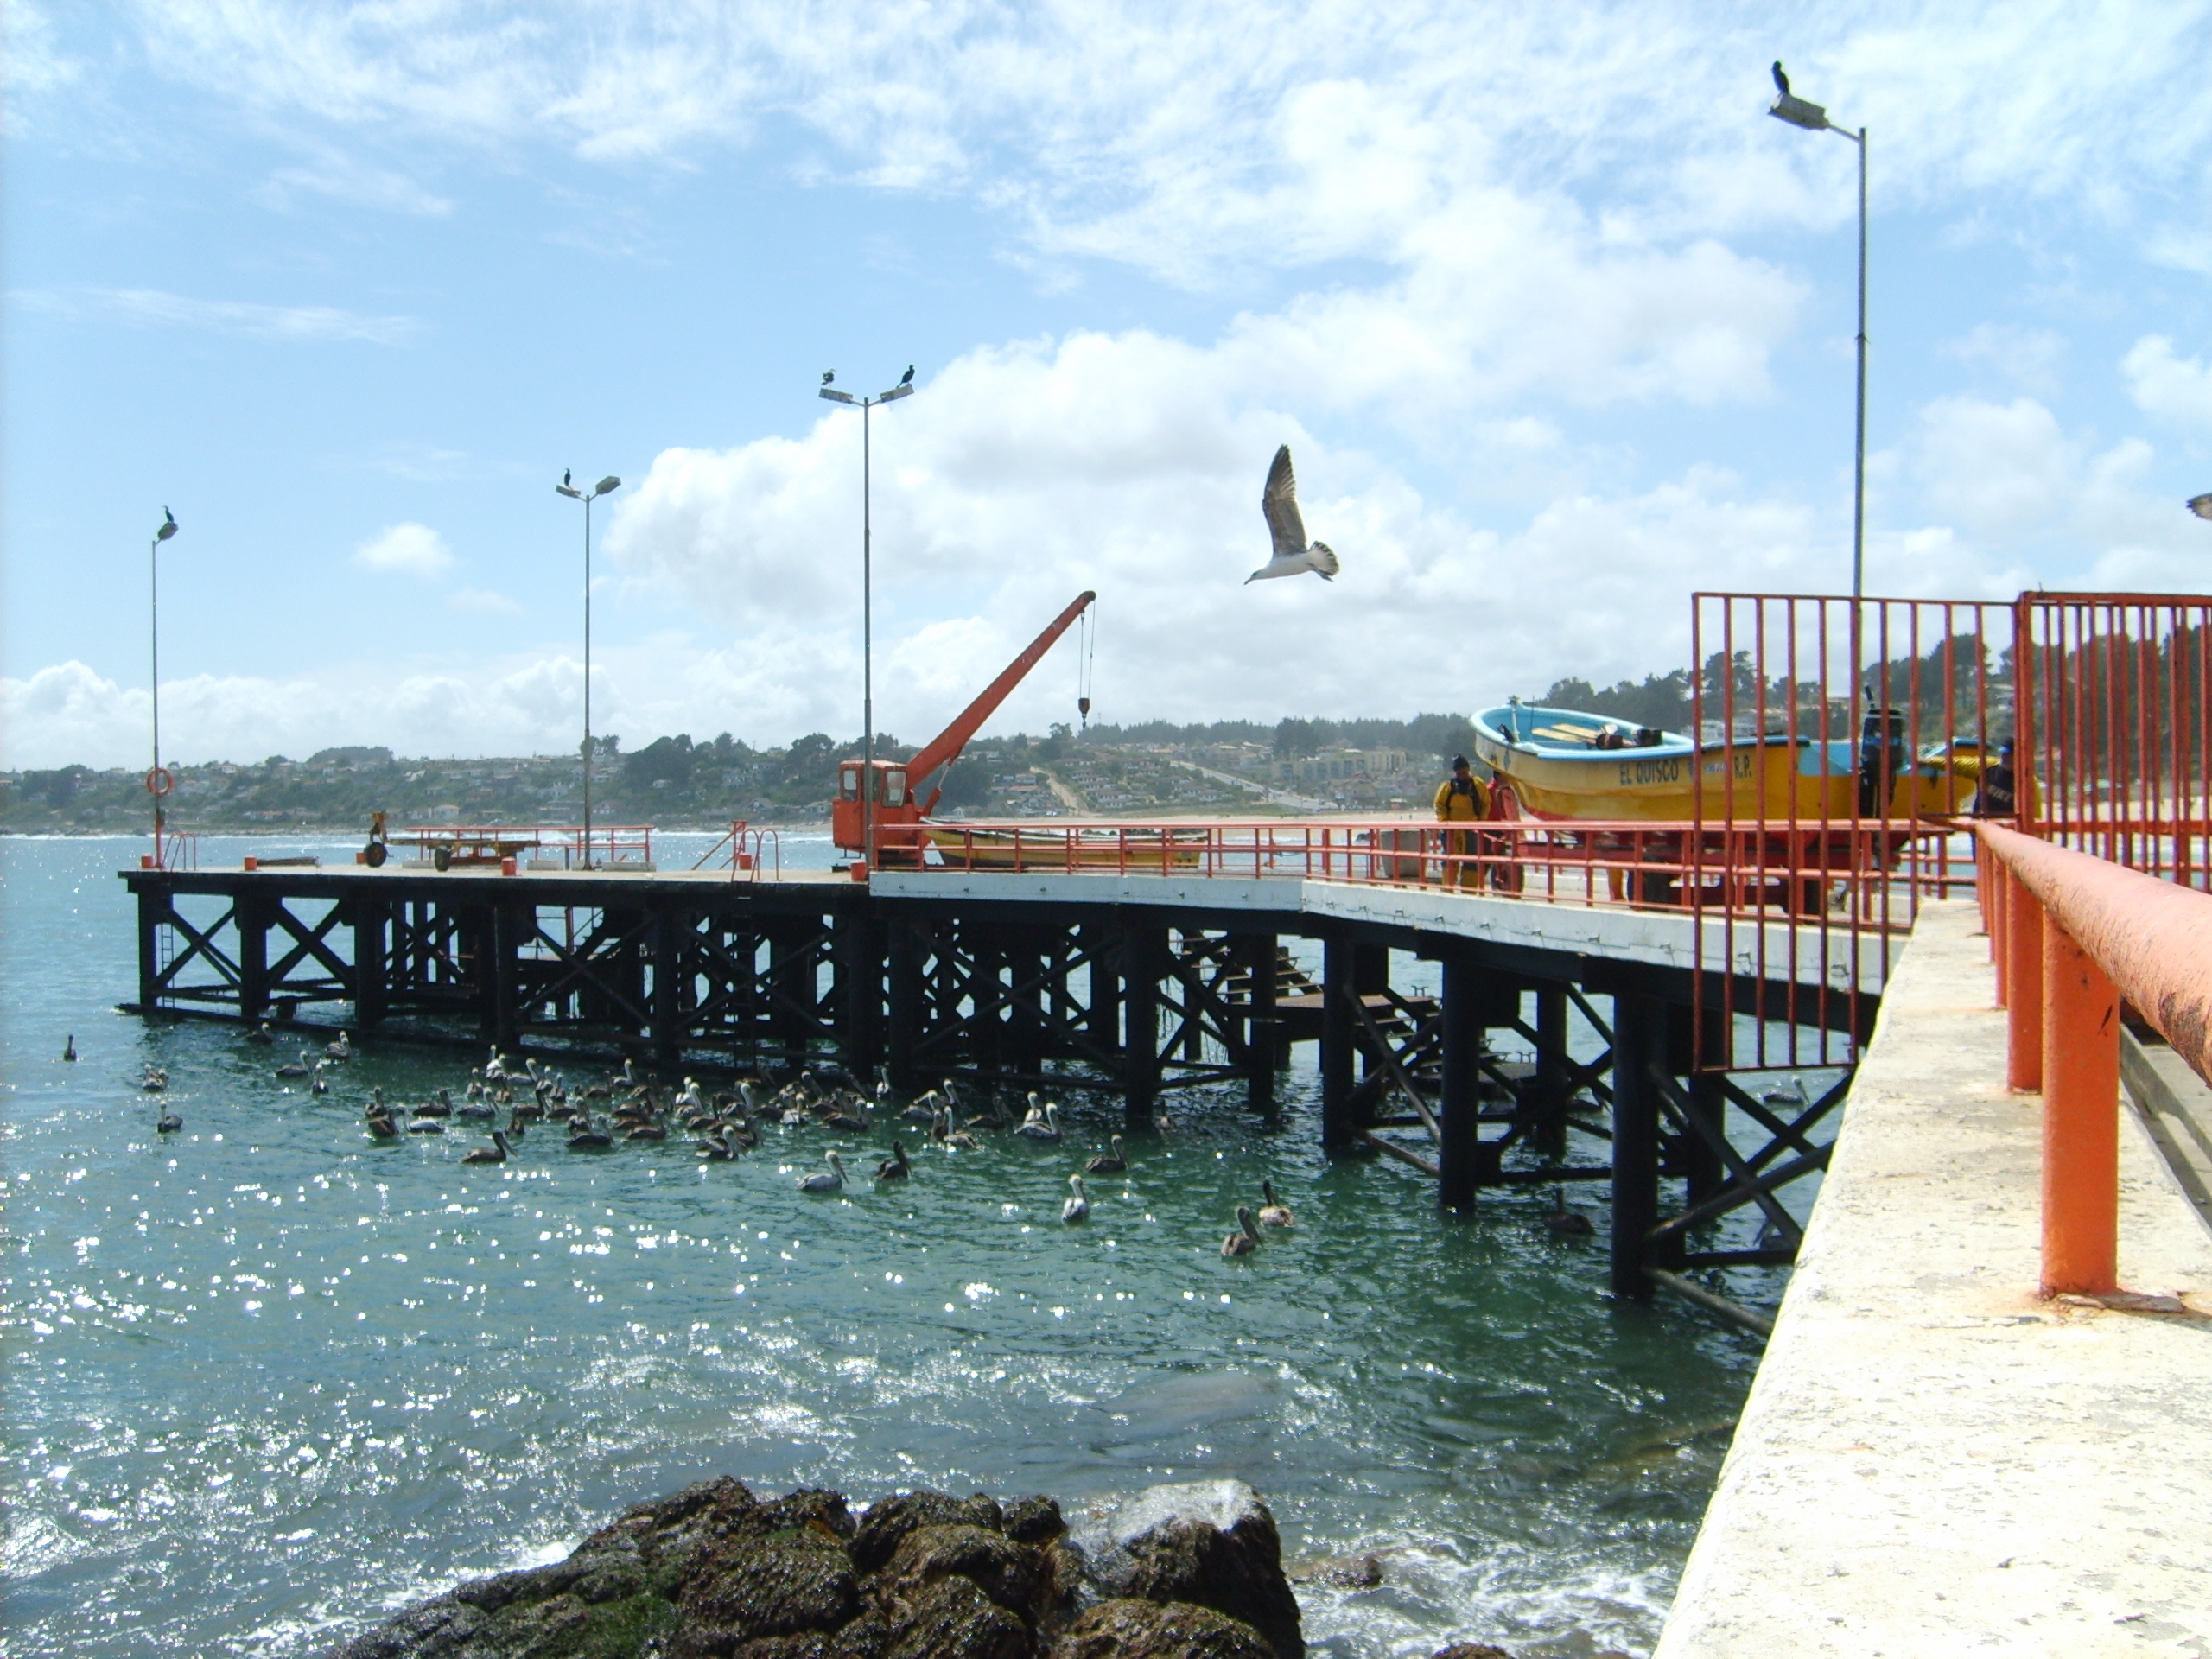 A basic pier located on sparkling blue waters